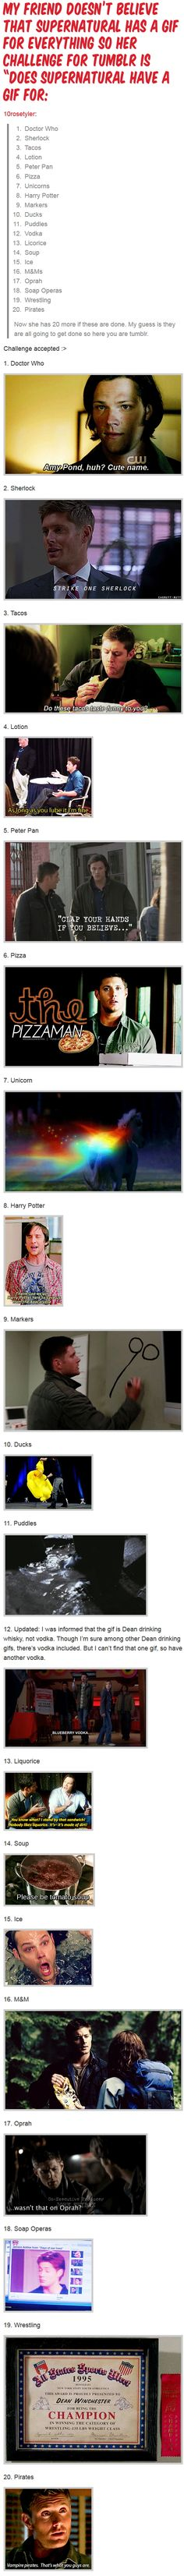 Challenge accepted... and obliterated. When will the world learn that Supernatural truly has a gif for EVERYTHING?